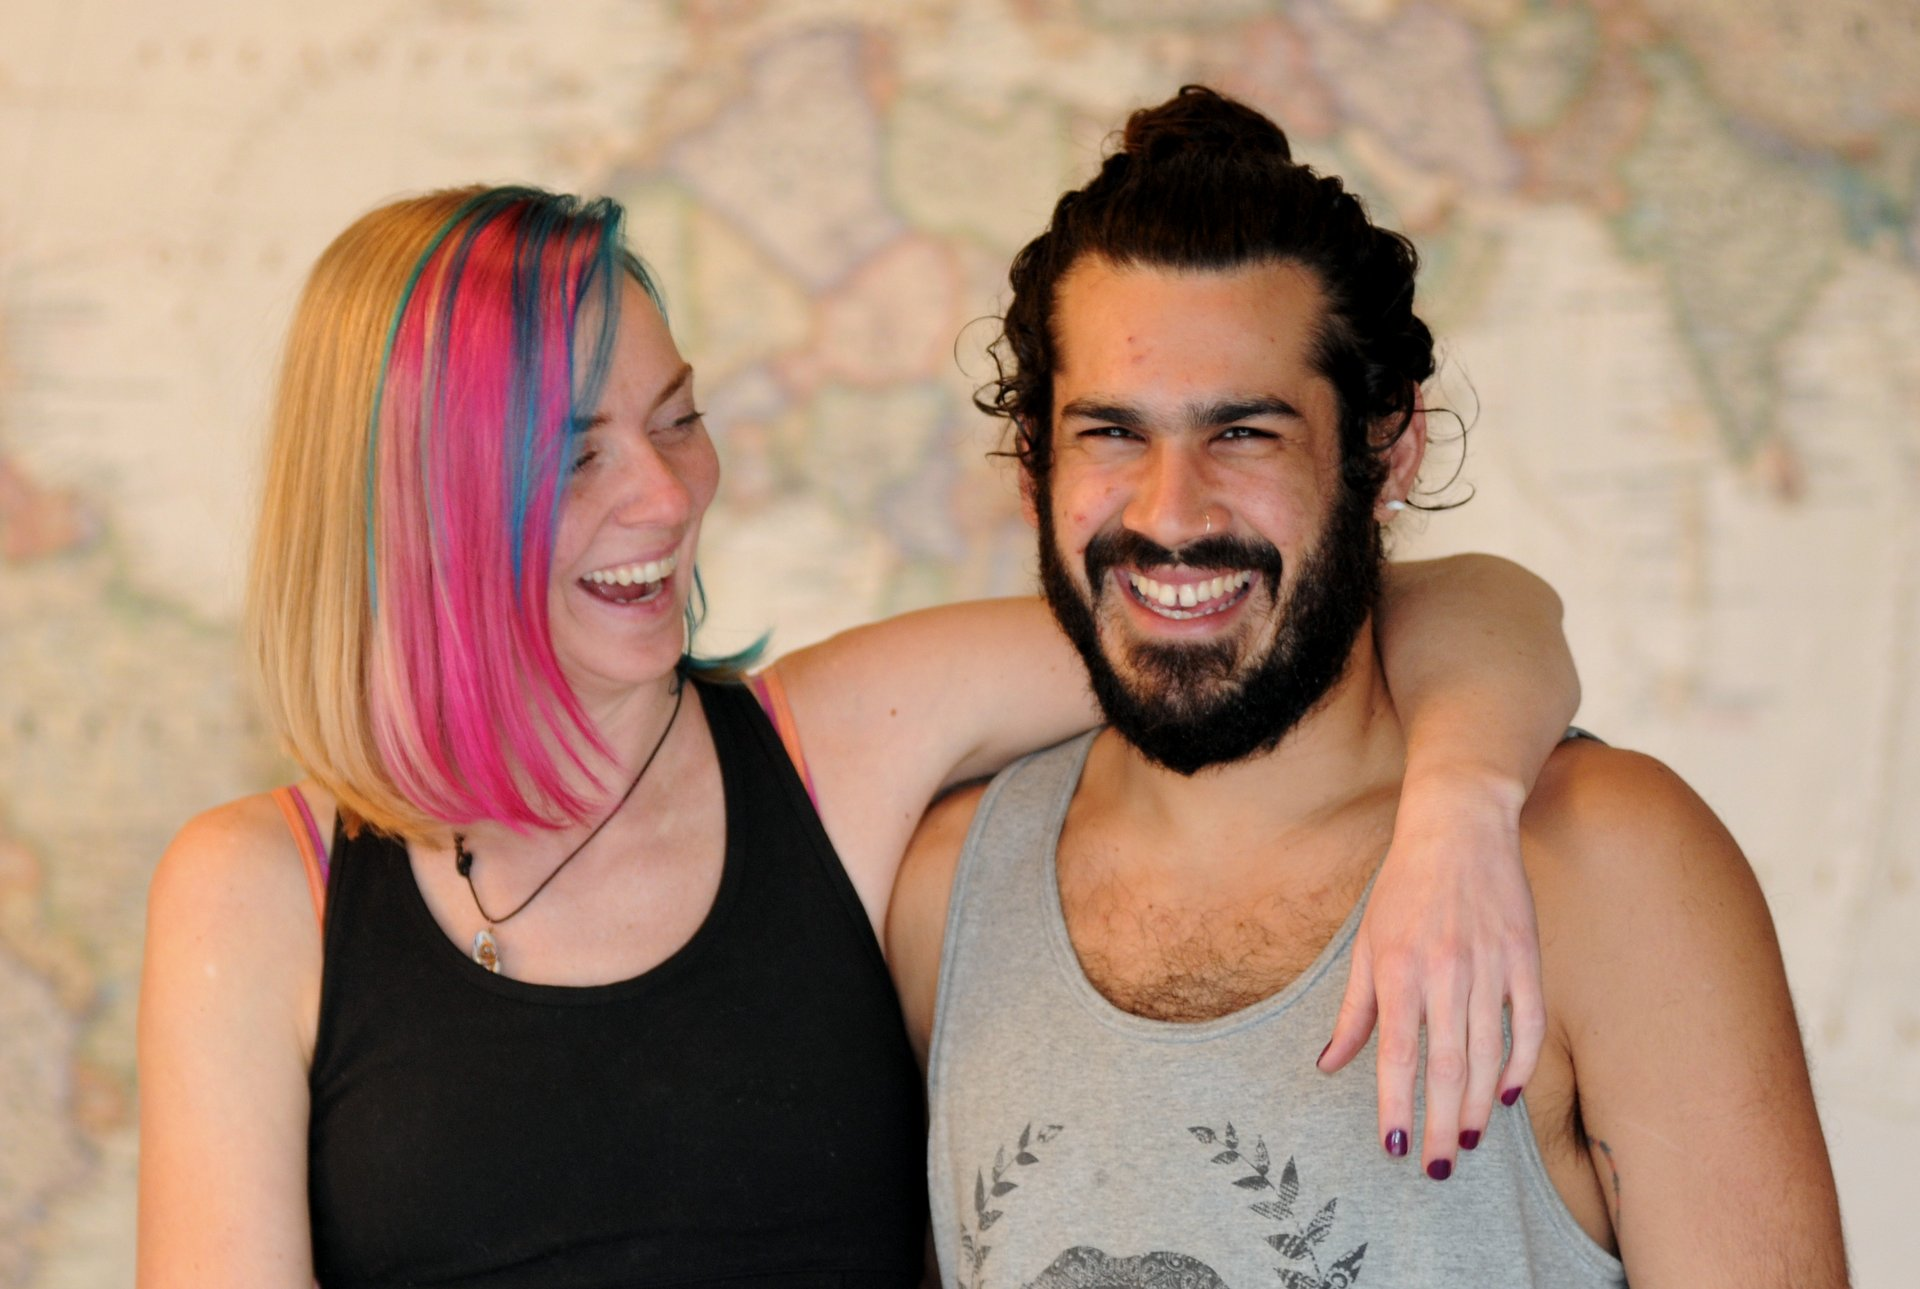 Candi & Darich smiling in front of a large world map and showing Candi's new Pink & Blue hair color